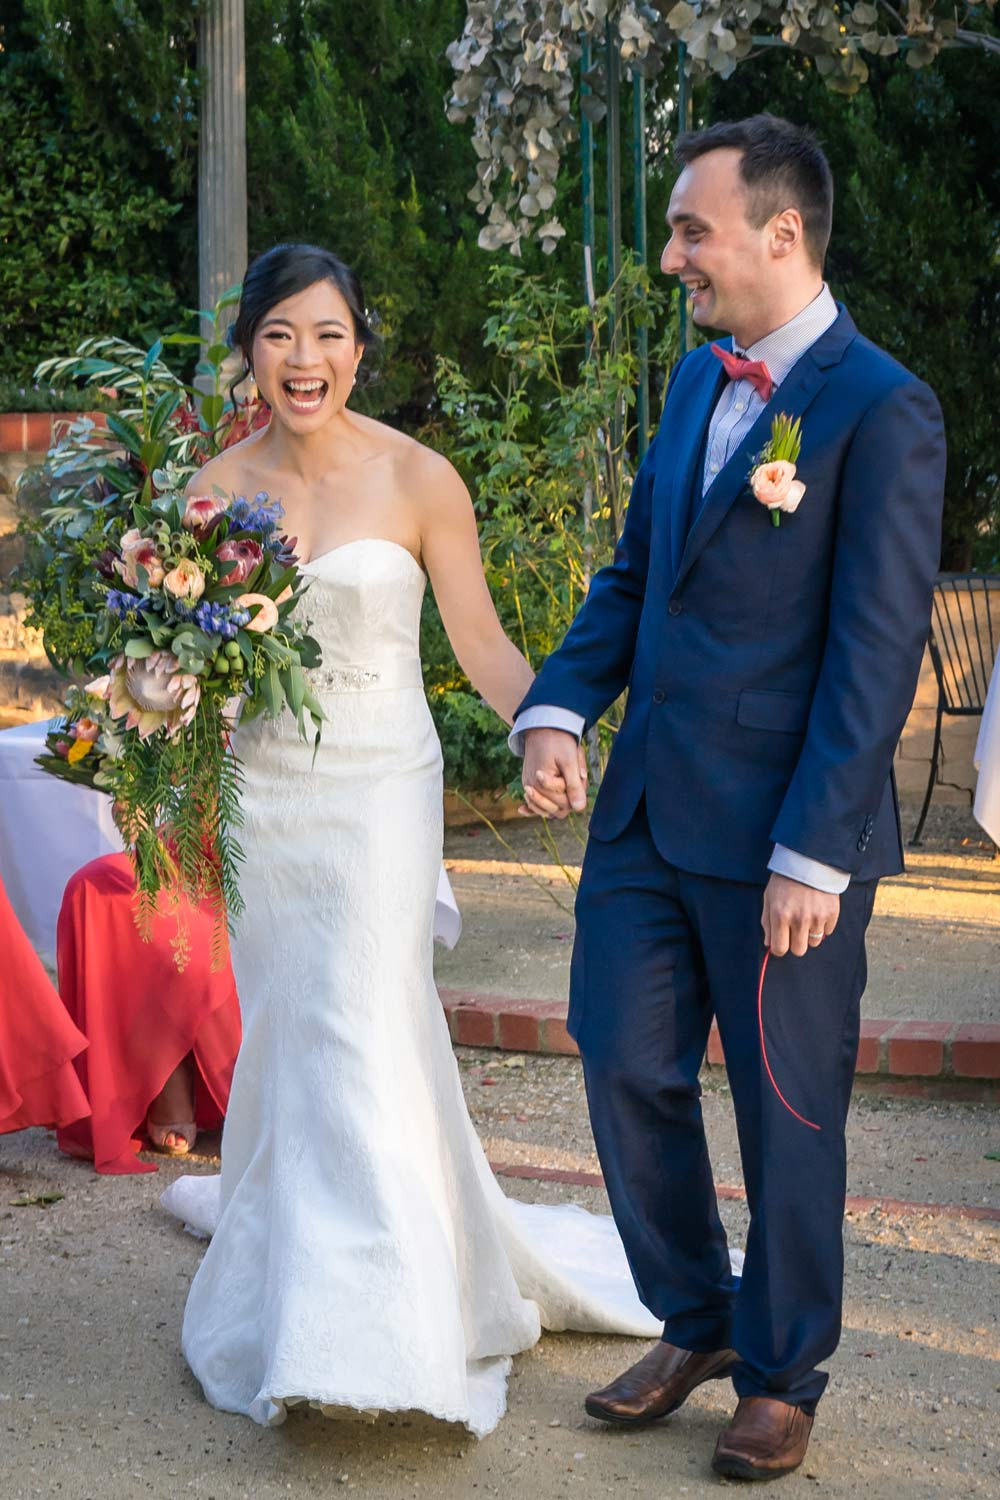 natural real wedding moment during ceremony at Yarra Valley venue captured by Melbourne photographers Derek Chan